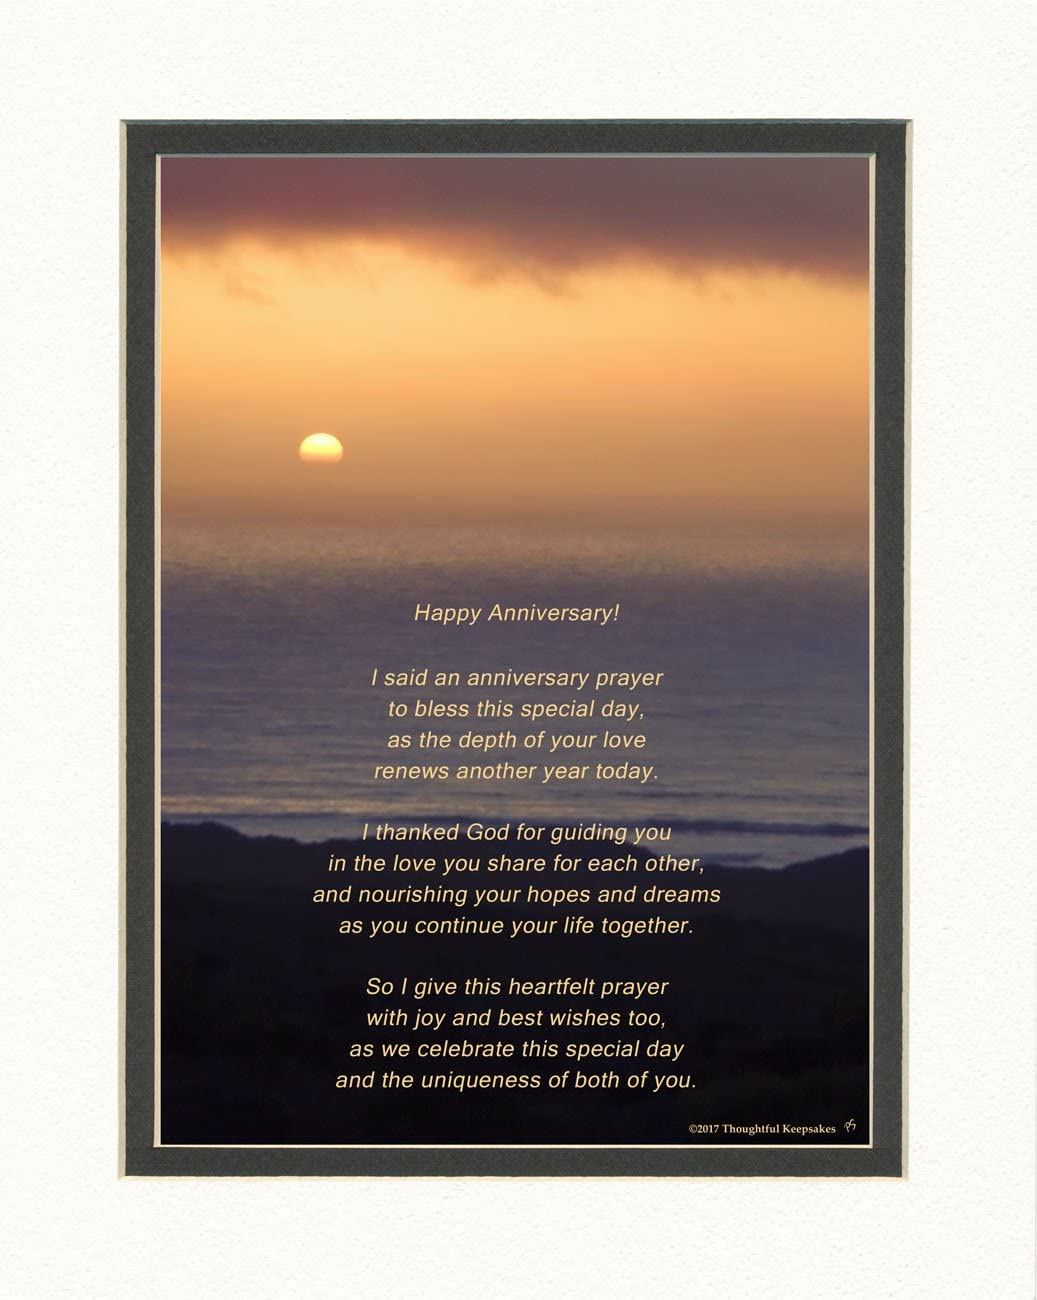 50th 8x10 Double Matted for Anniversary for Couples for First to 10th 25th Ocean Sunset Photo with Happy Anniversary Prayer Poem